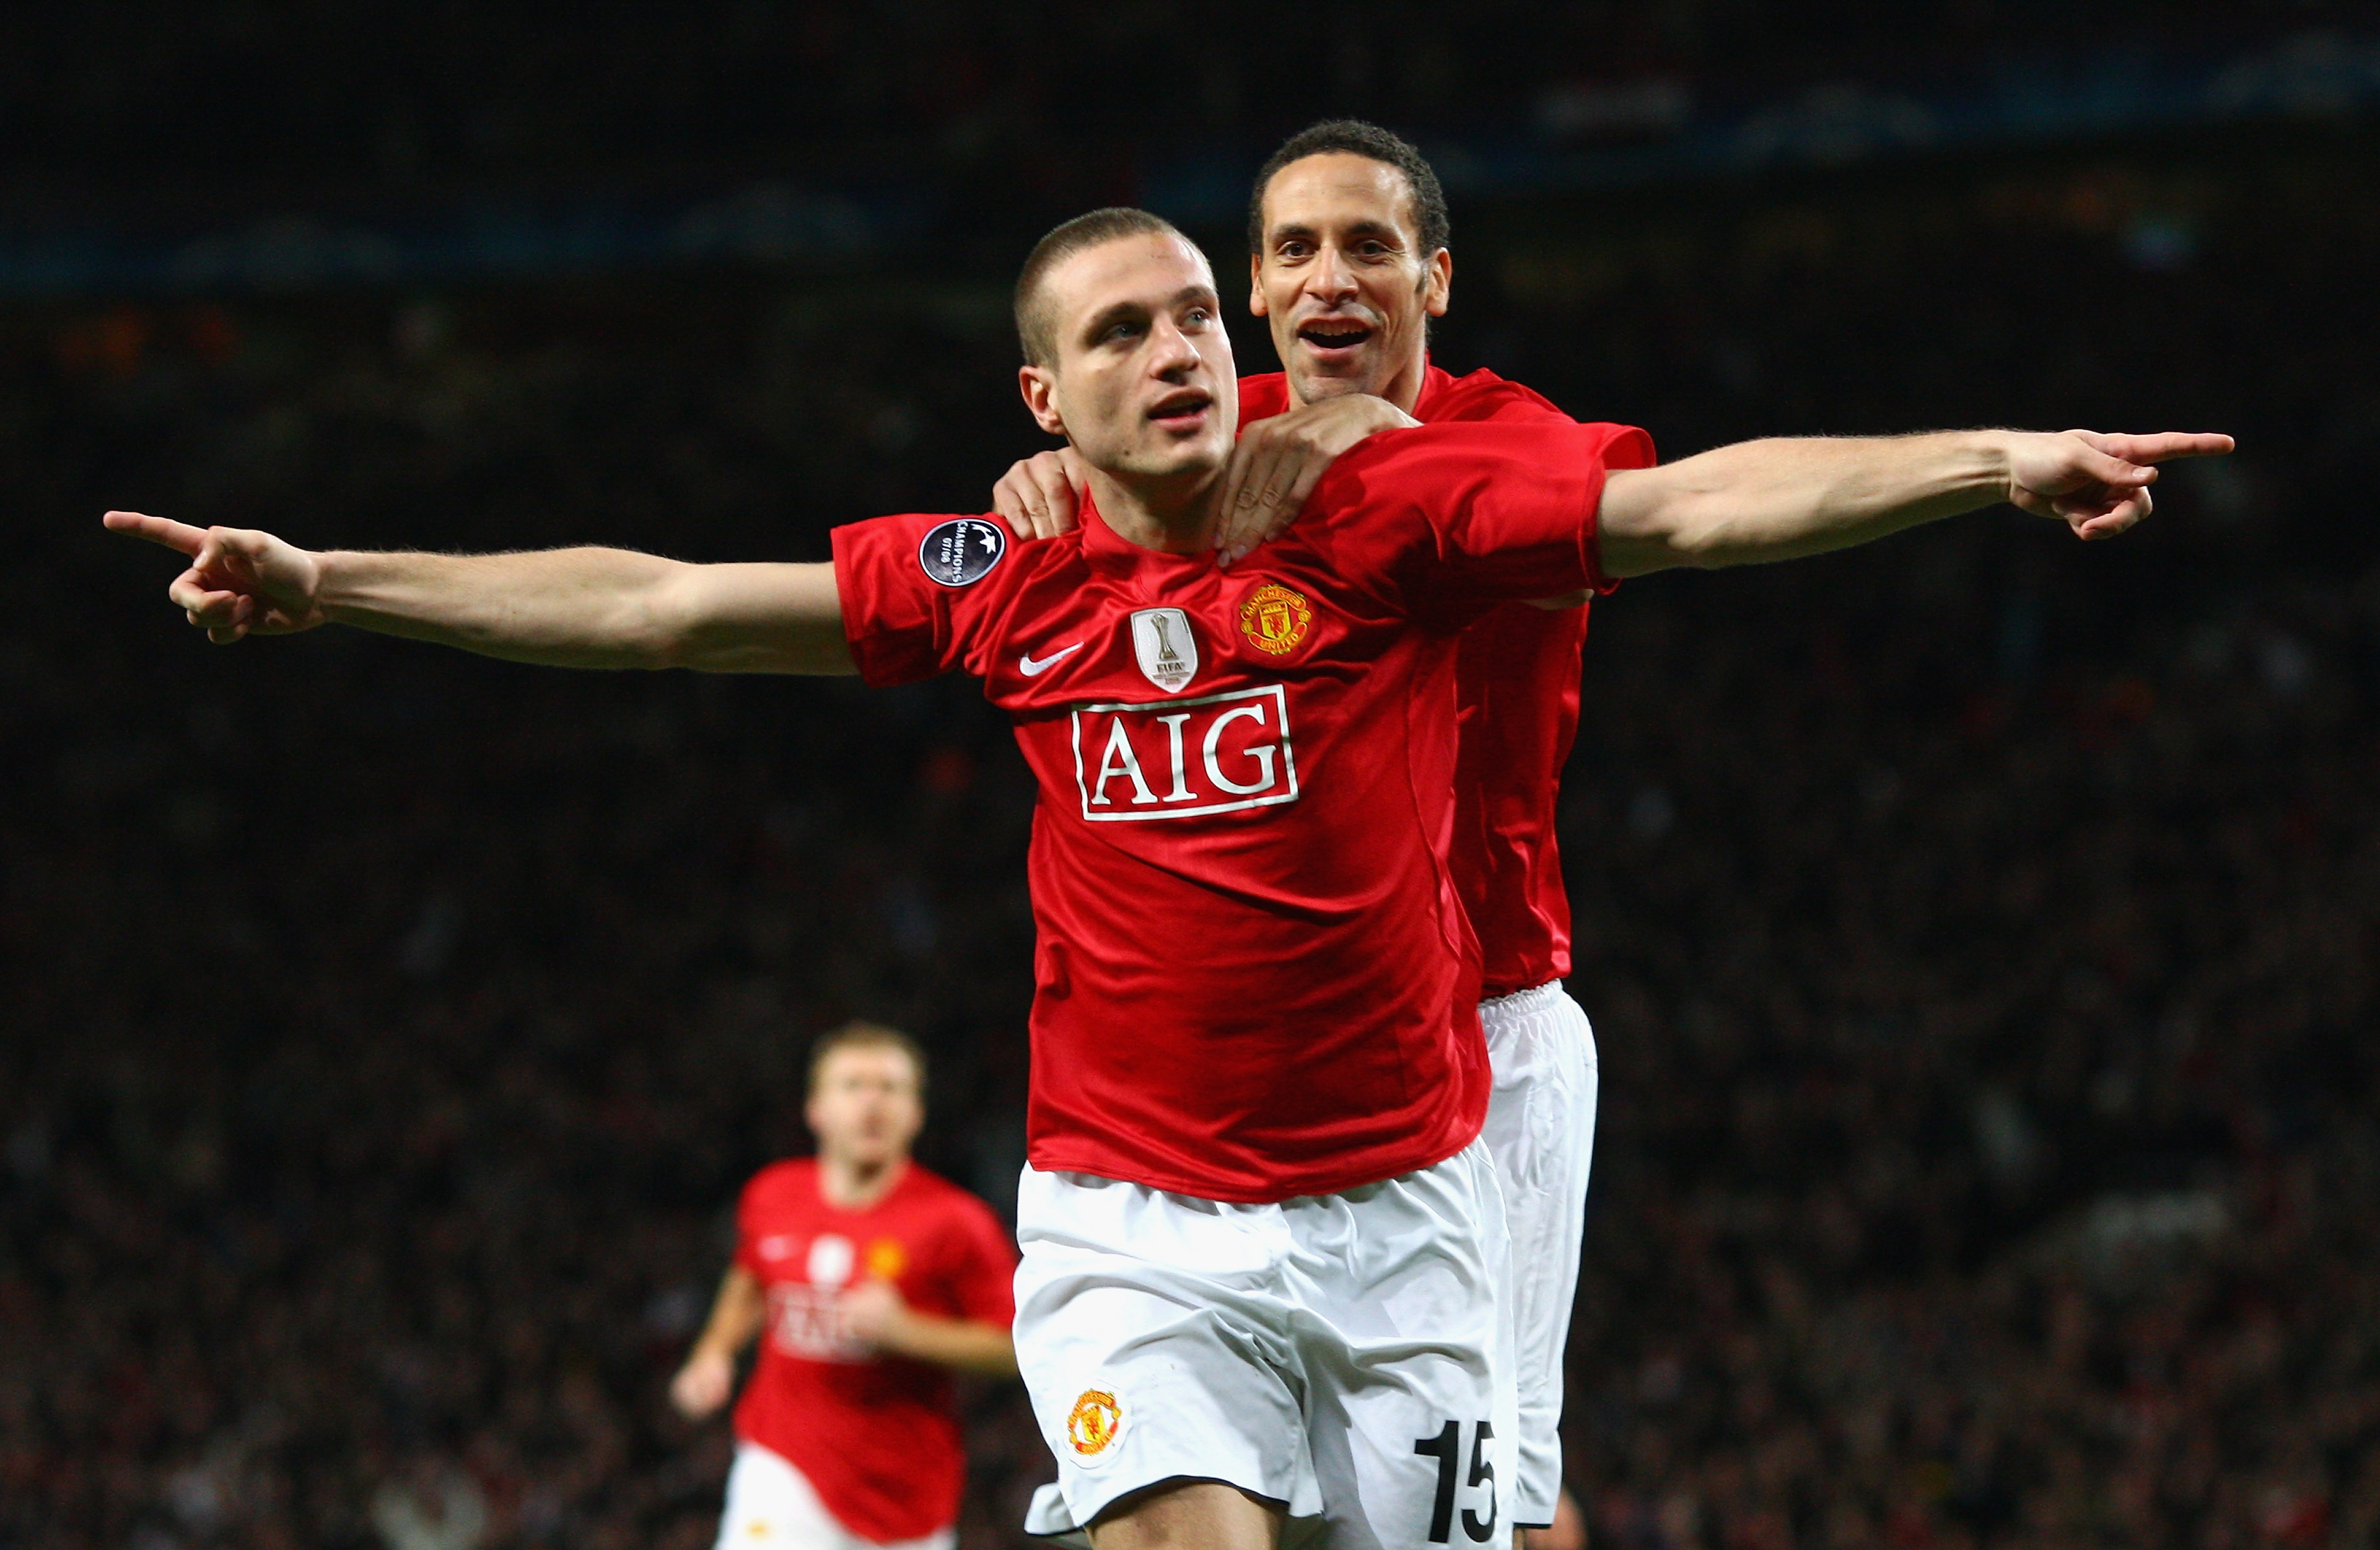 Manchester United legend Nemanja Vidic reveals HE is flattered by Eric Bailly comparisons